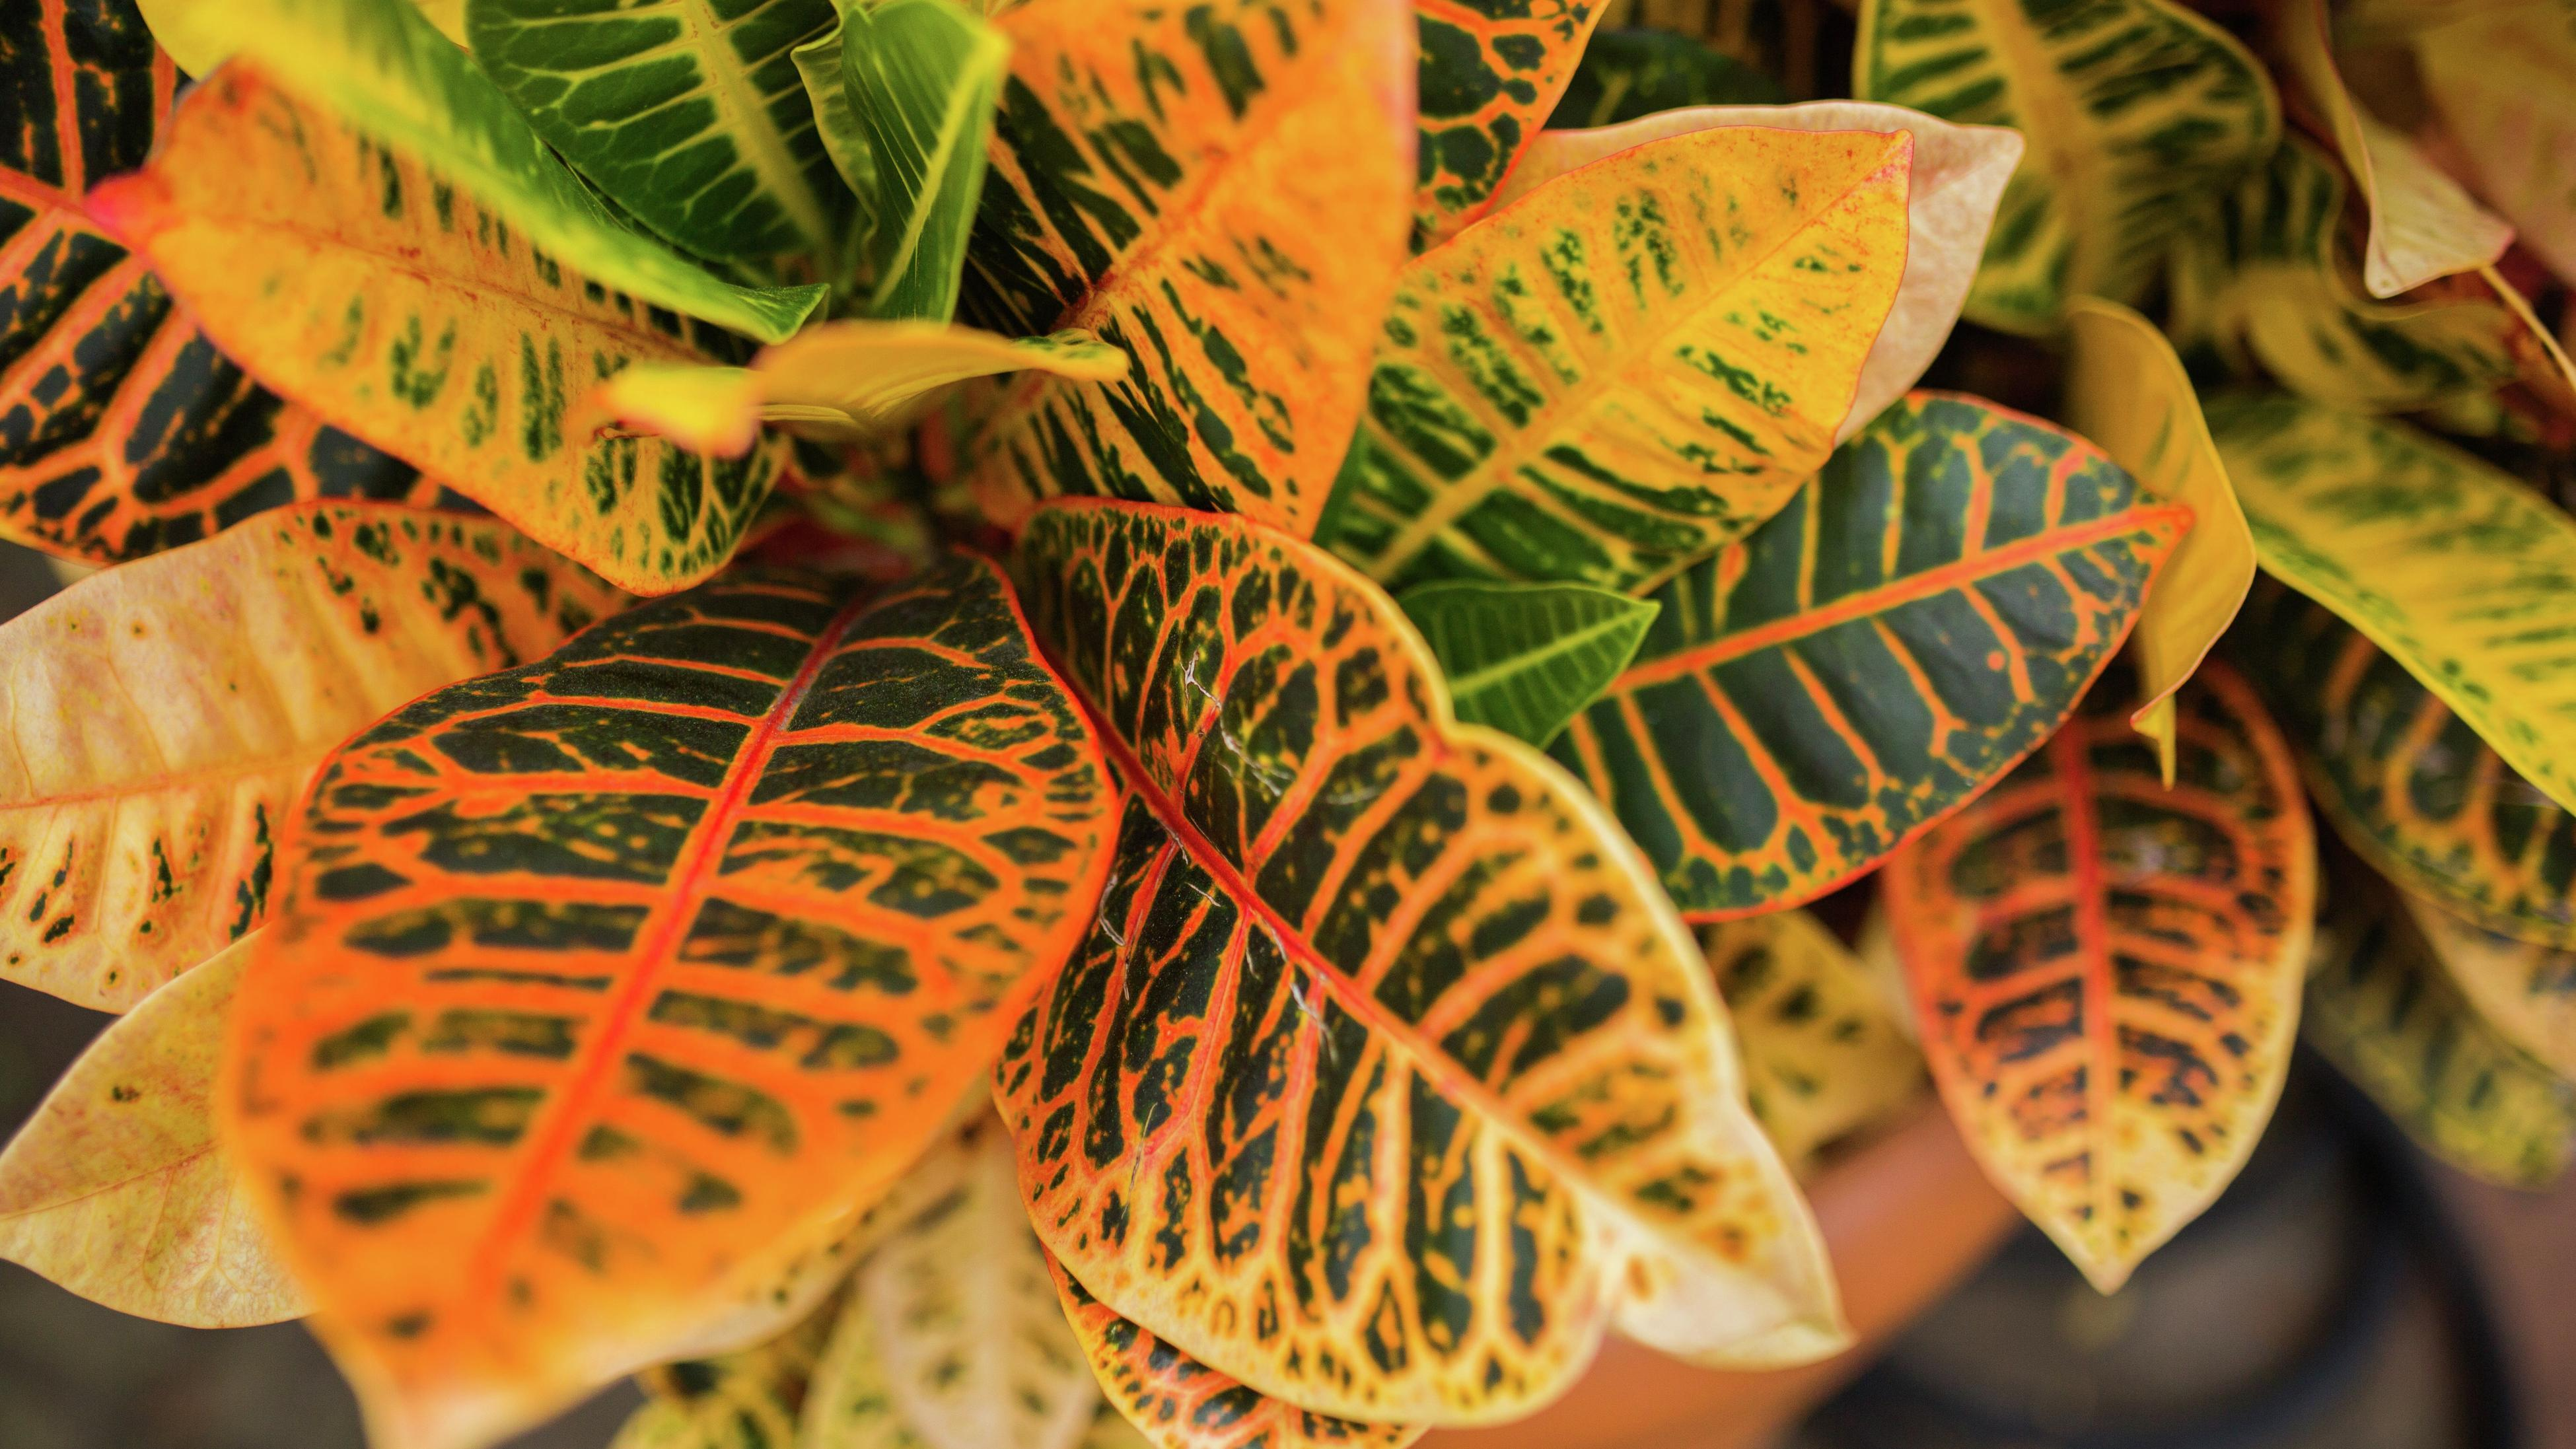 birds eye close up view of the yellow and orange tons of the Croton's leaves